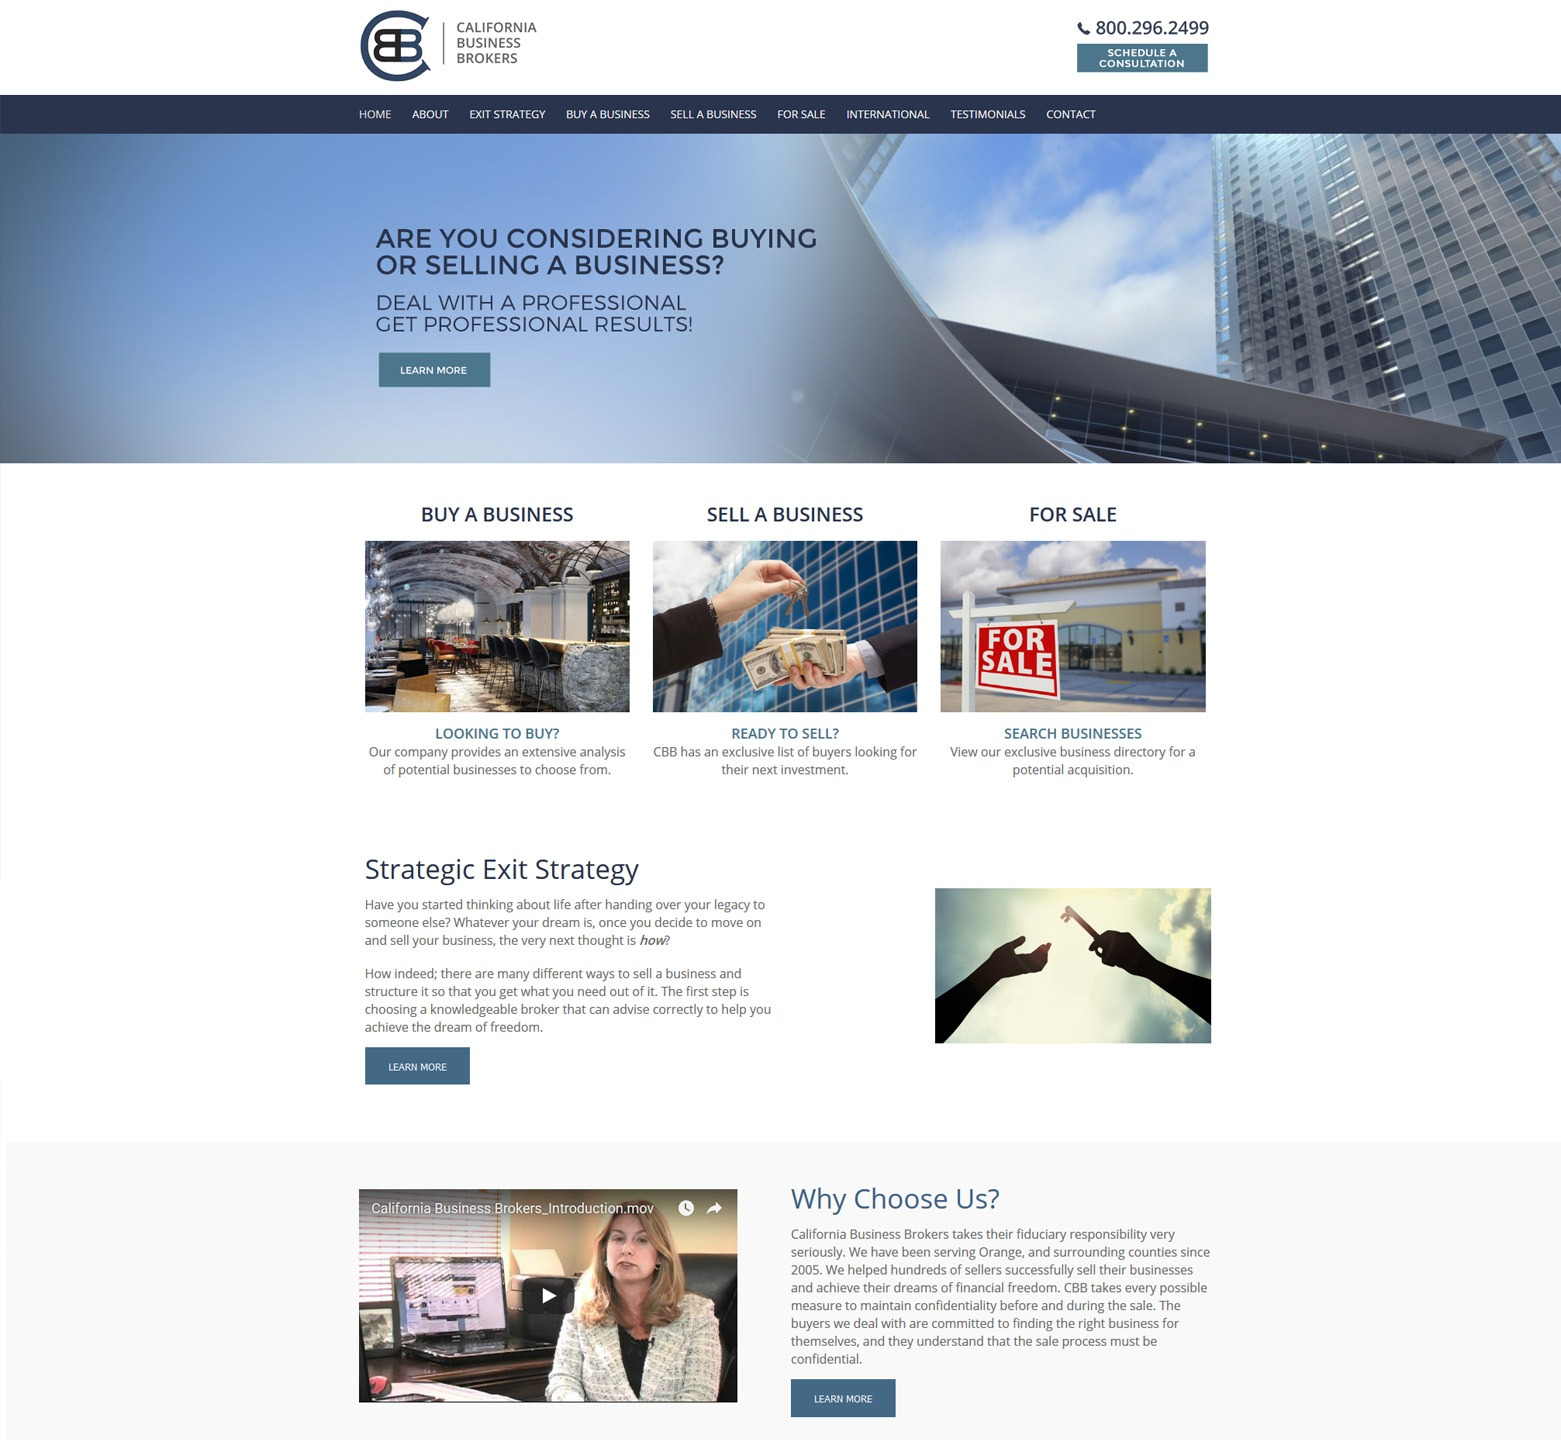 LA Angeles Business Broker Web Design Company